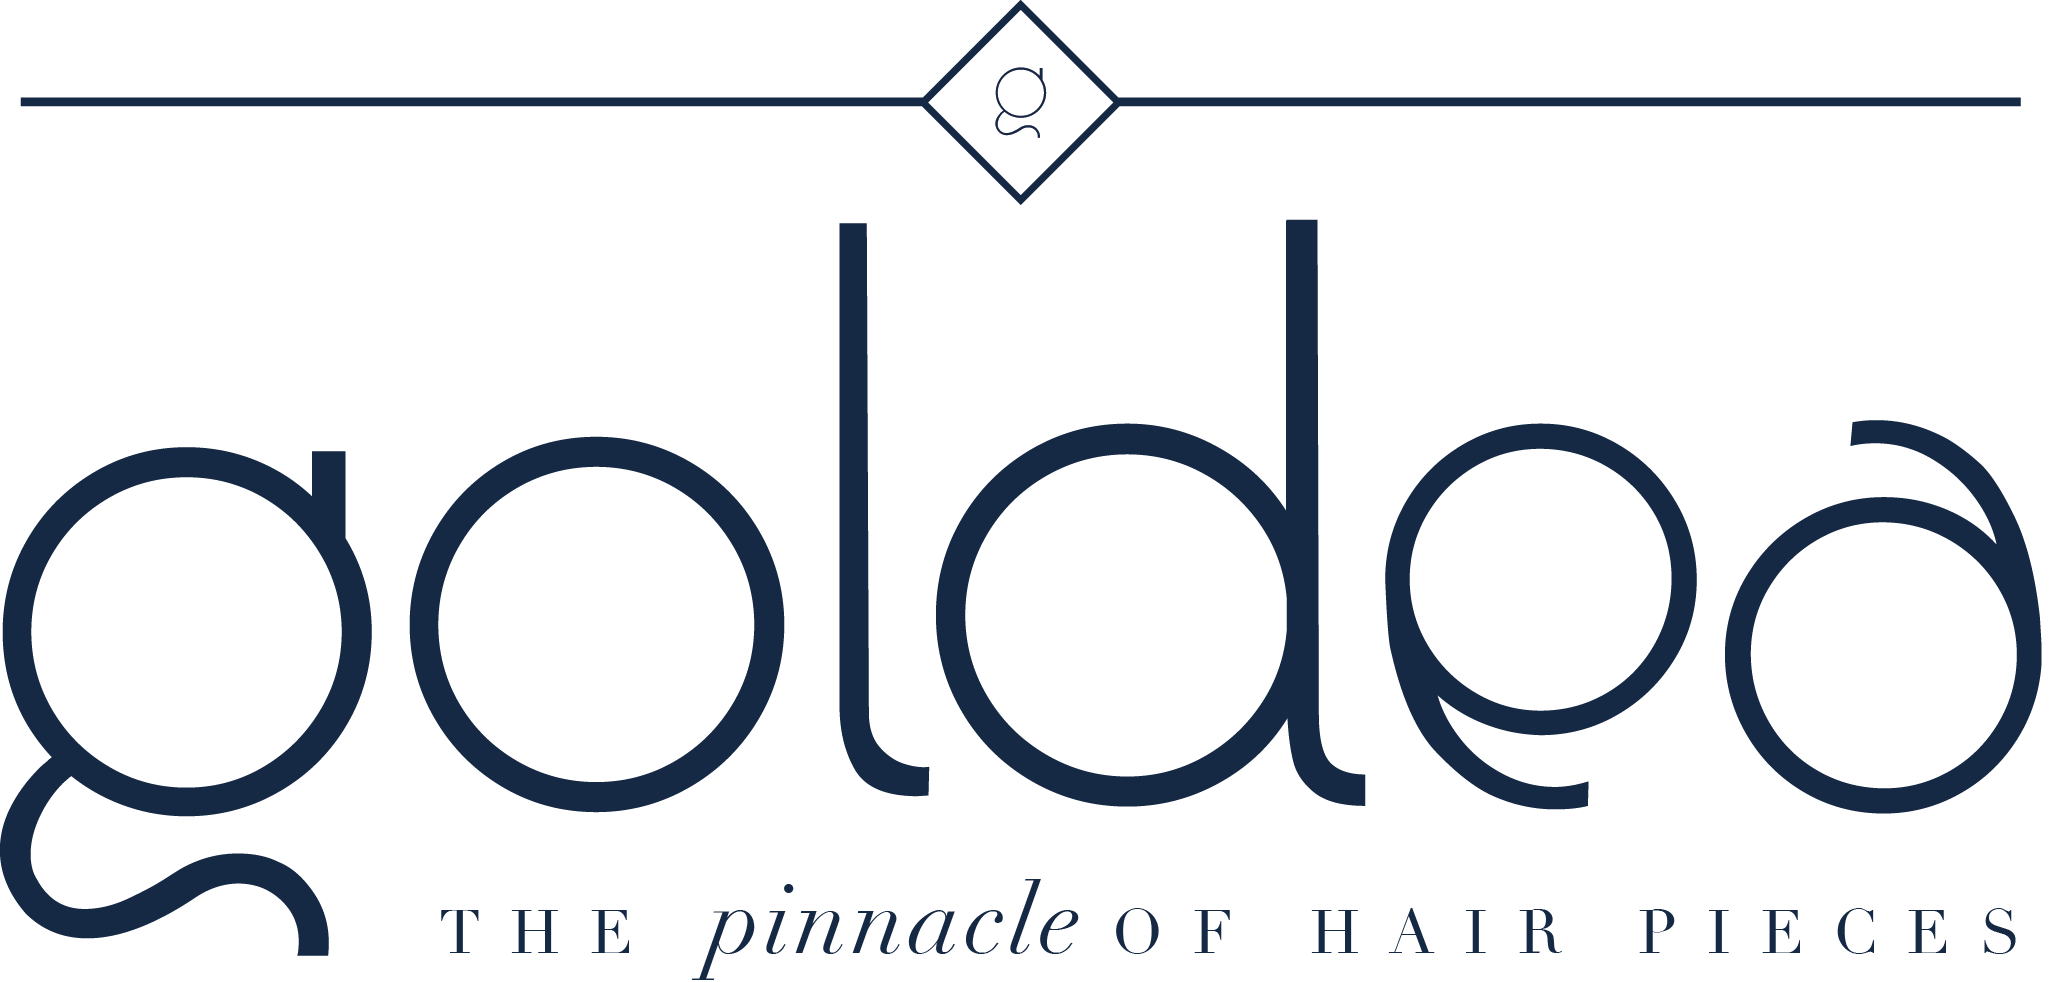 Goldea - The Pinnacle of Hair